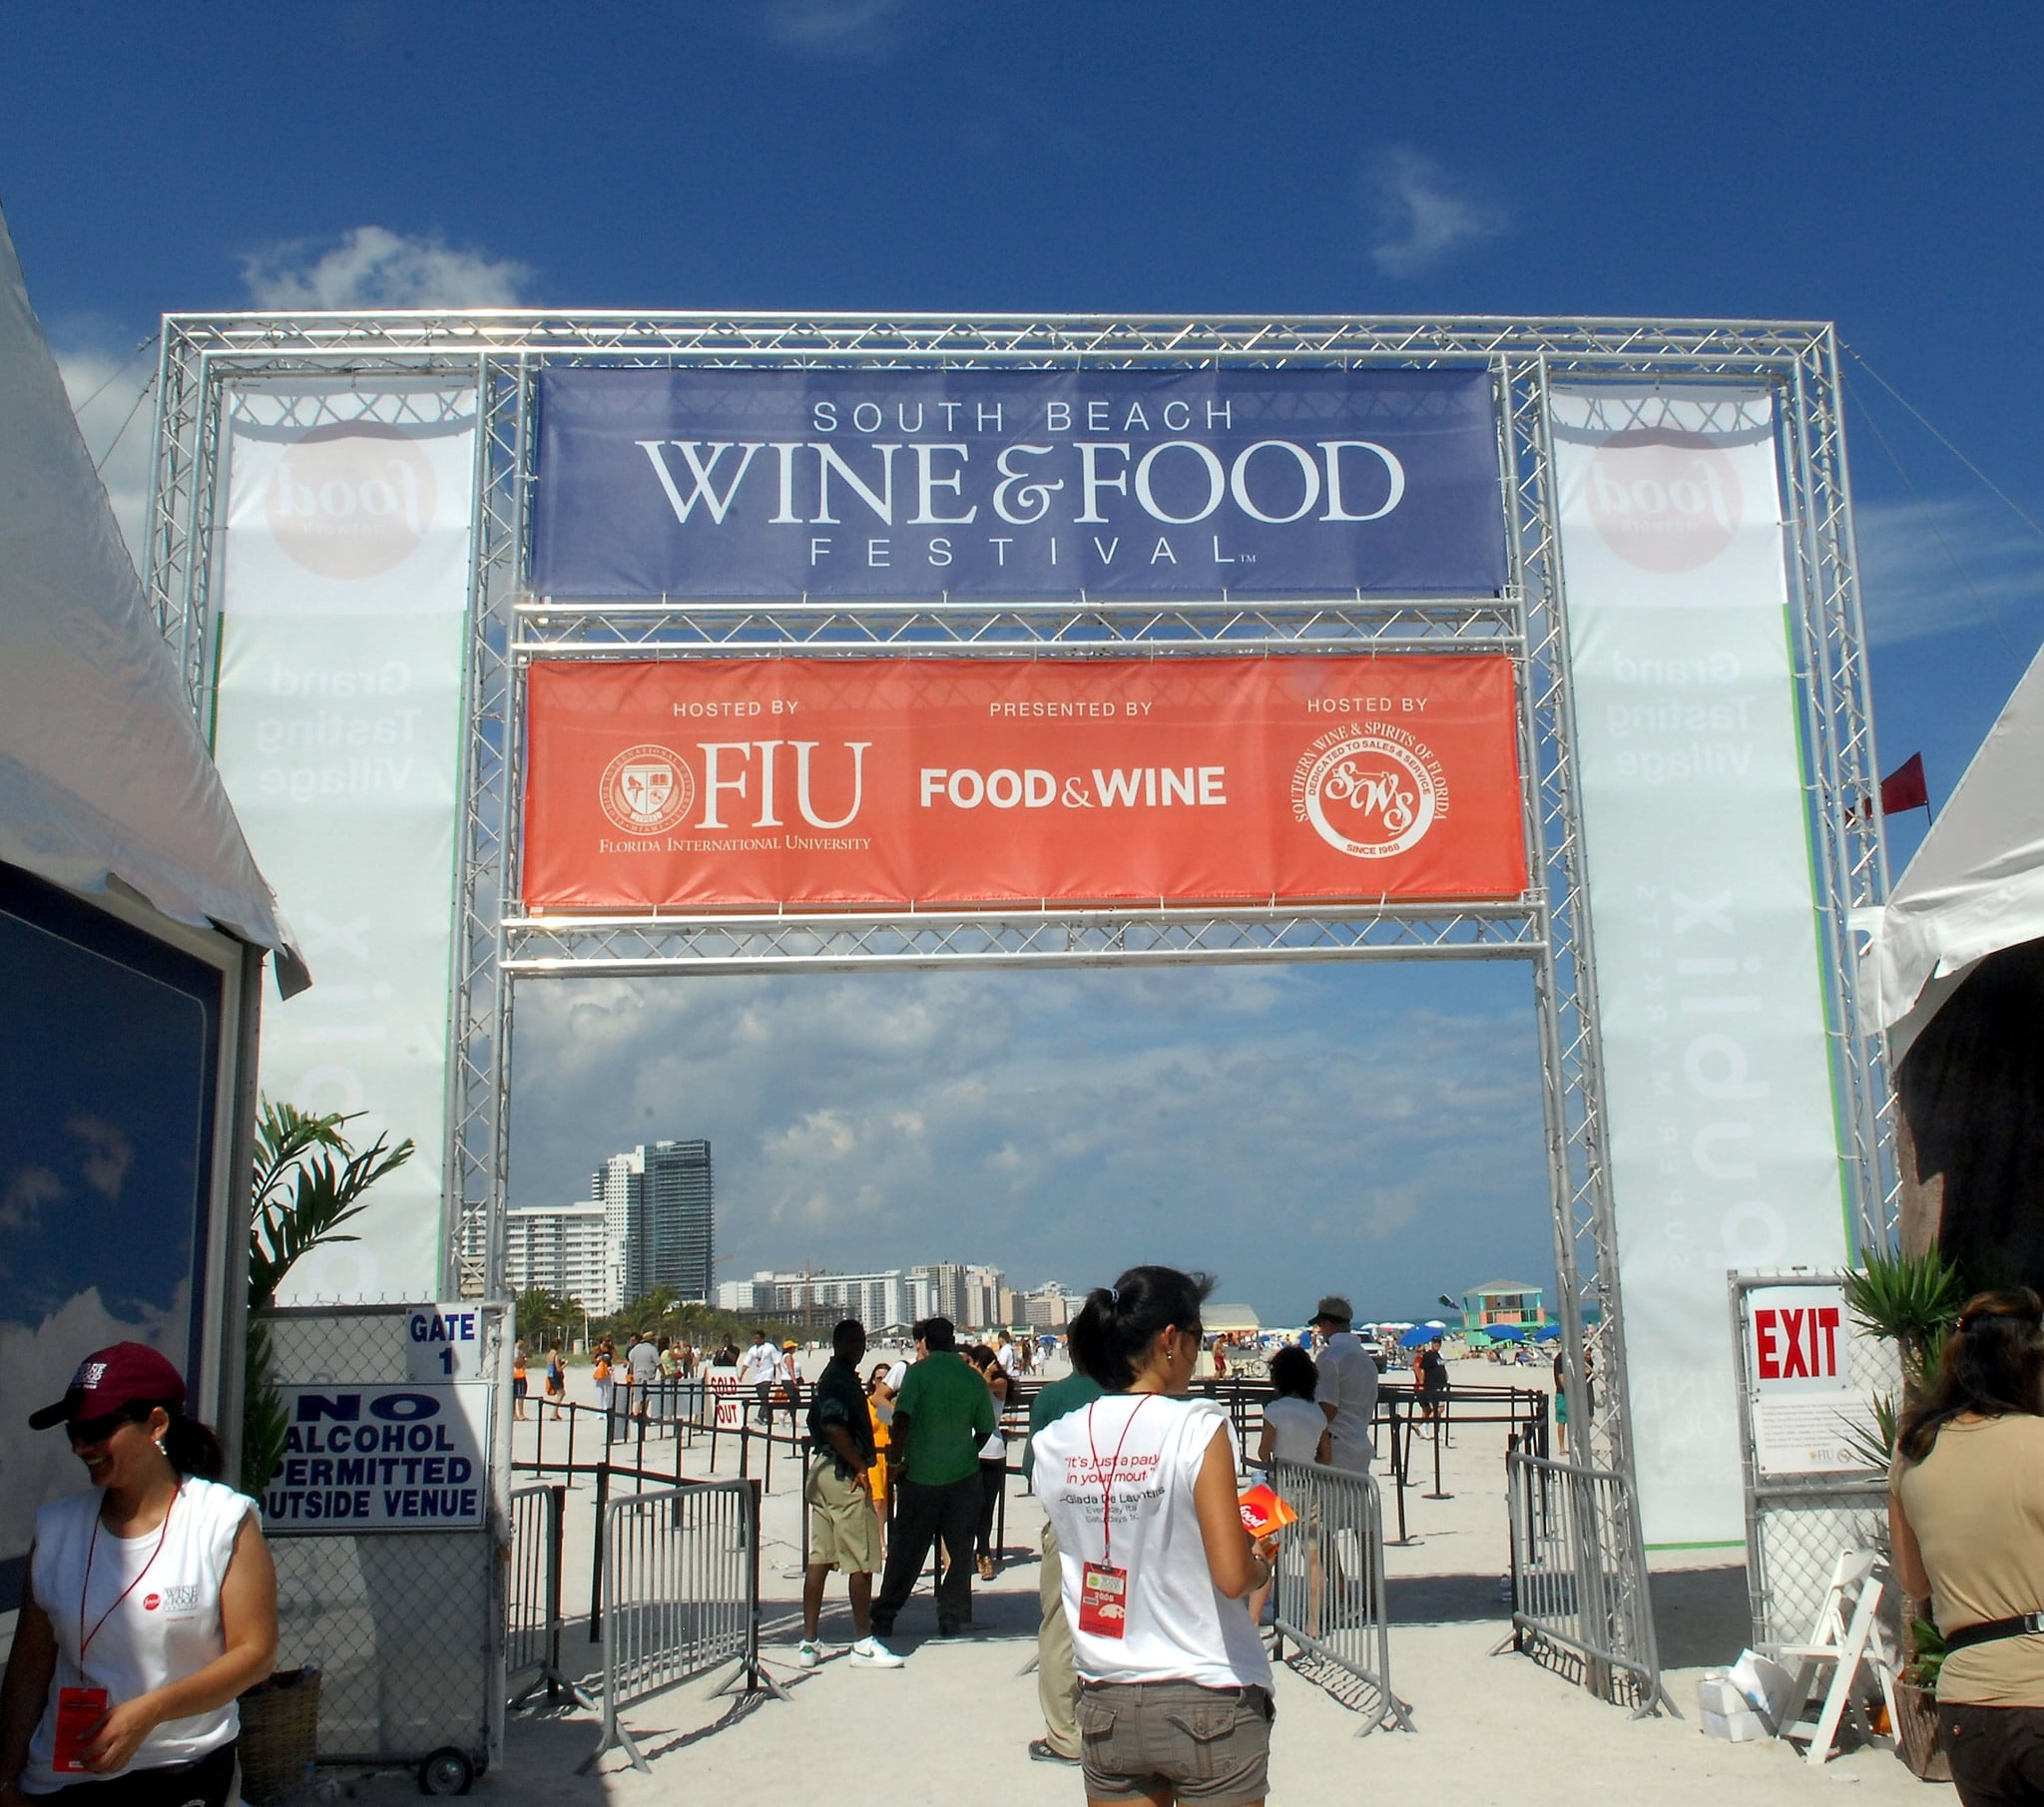 2008 South Beach Wine and Festival